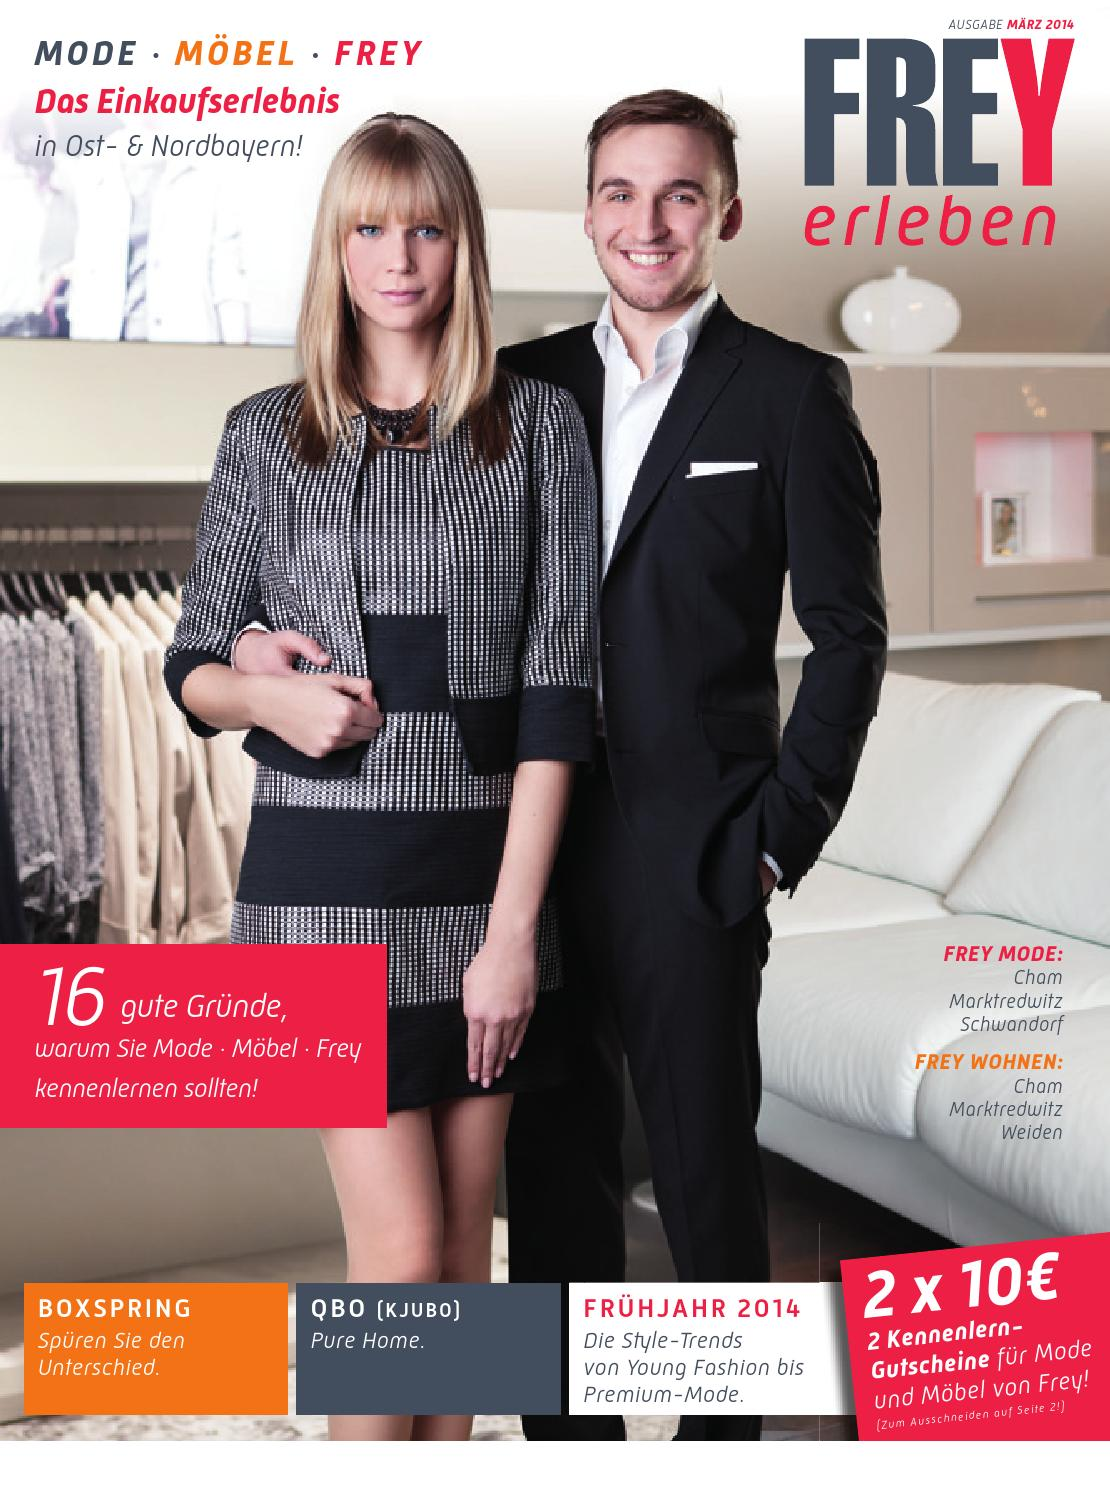 frey erleben magazin 0314 by chilipaper gmbh issuu. Black Bedroom Furniture Sets. Home Design Ideas